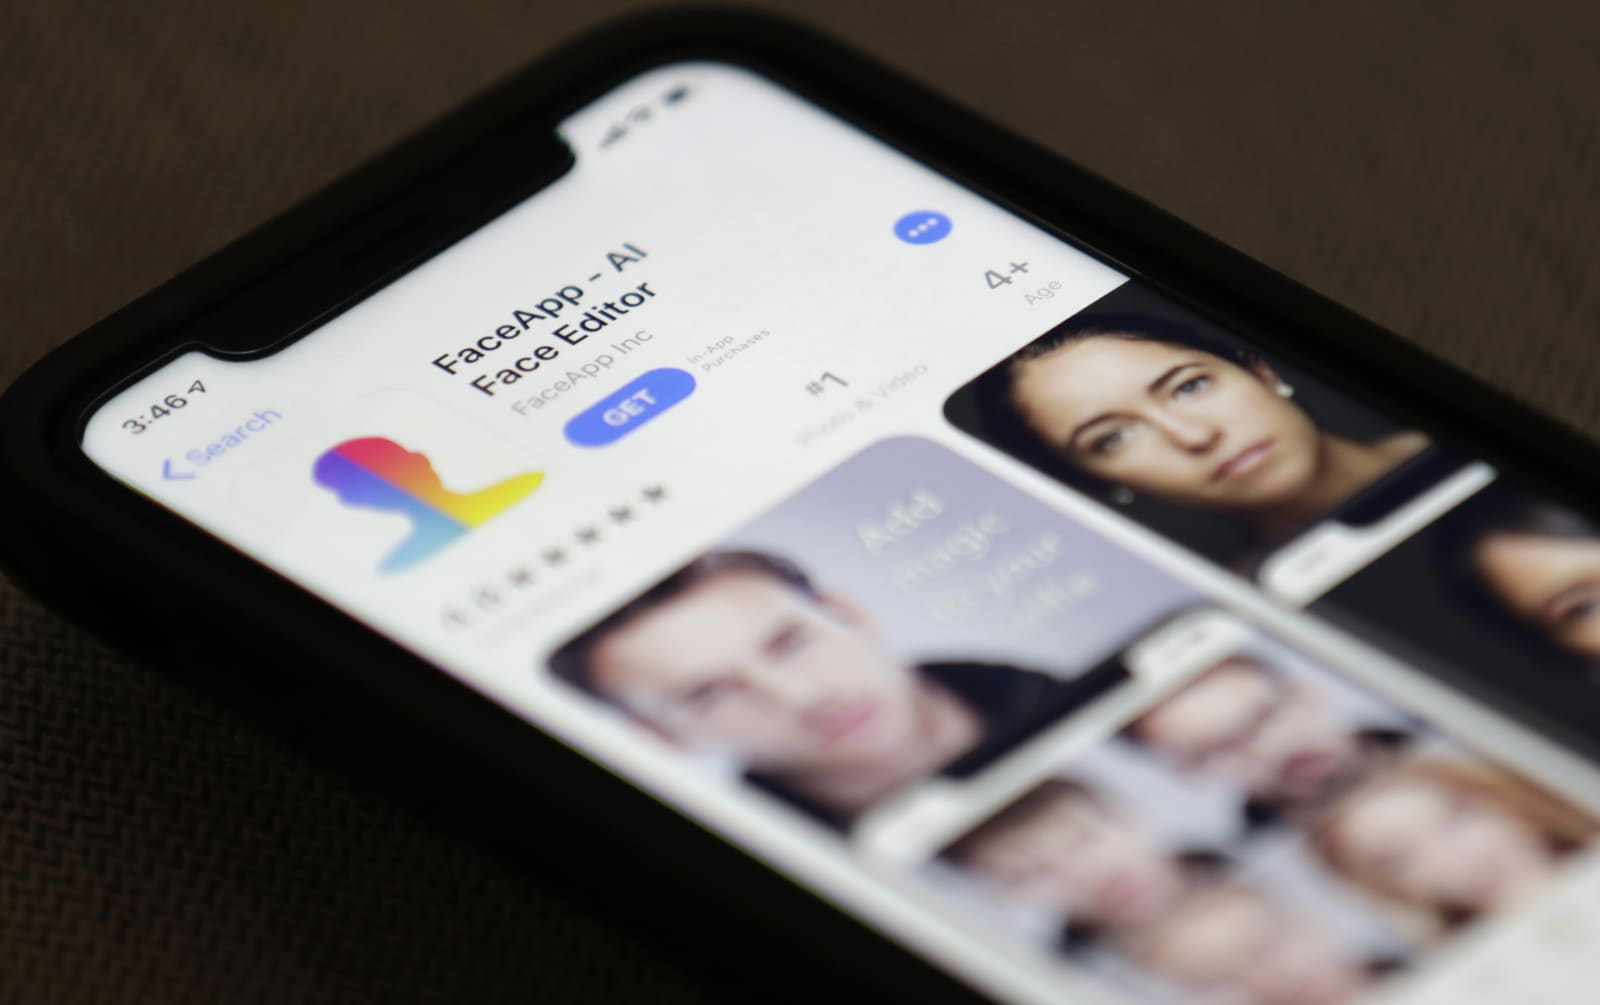 US senator calls for probe into FaceApp over privacy concerns